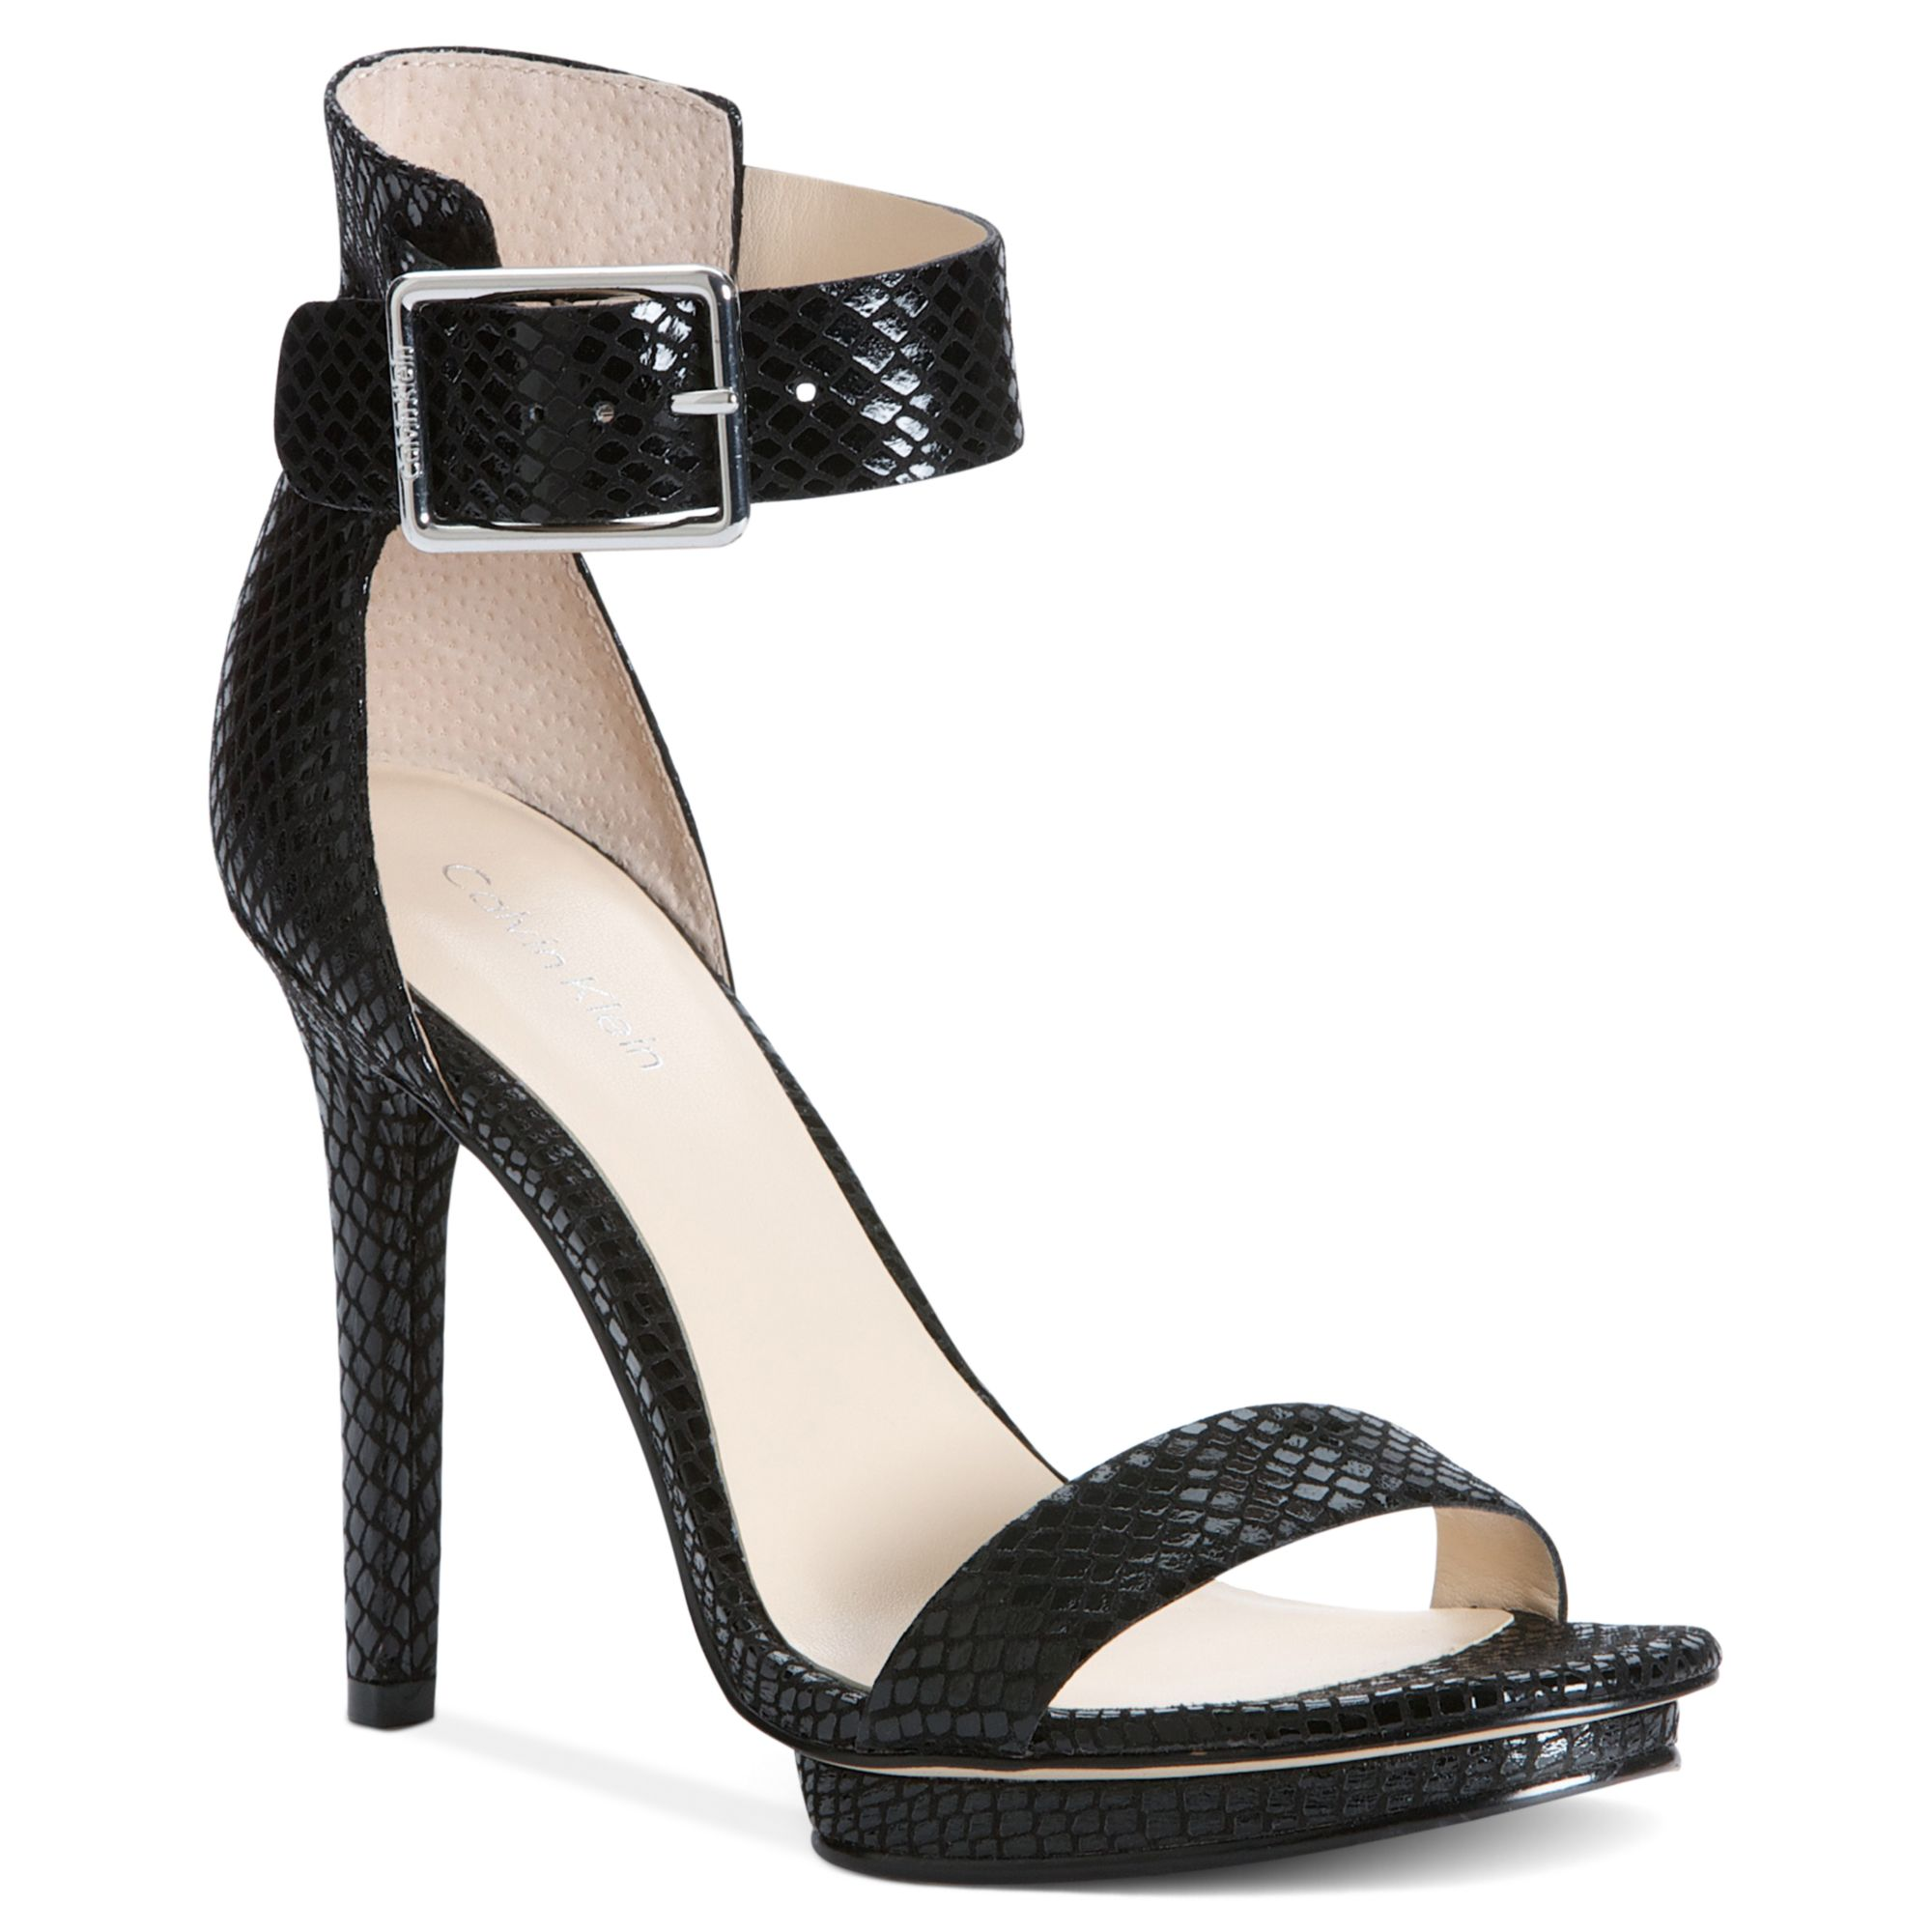 New JCPenneycom Is Offering A Super Deal On Womens Sandals Buy 1 Get 2 FREE Through 327! The Sandals Start At $40 So That Makes Each Pair Only $1333 With The Discount! There Are Also Coupons